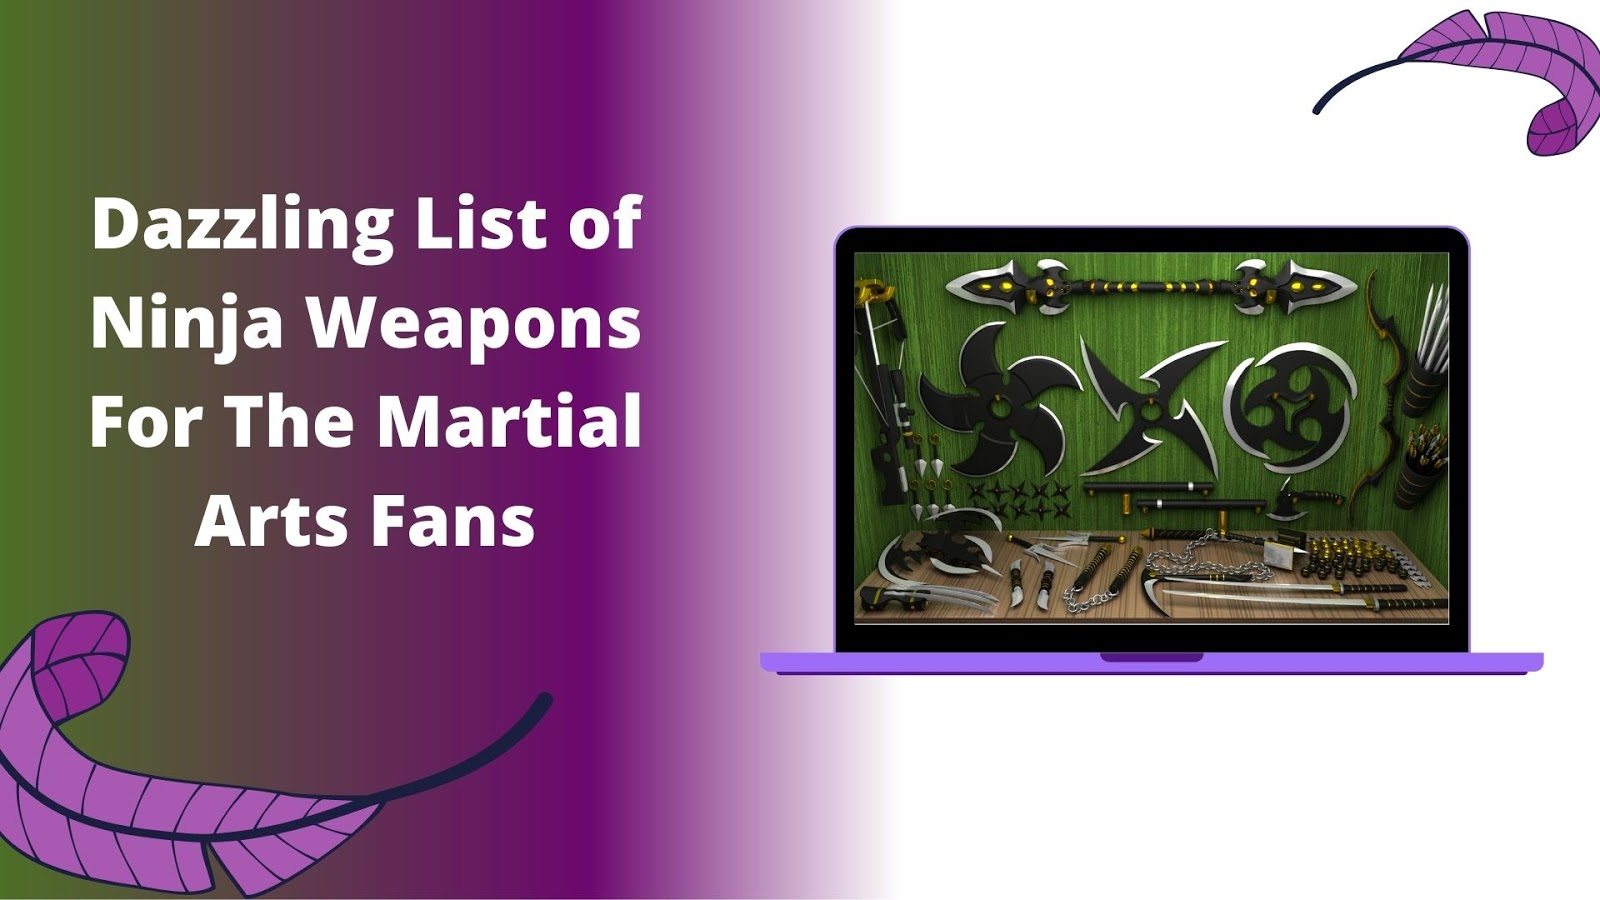 Dazzling List of Ninja Weapons For The Martial Arts Fans